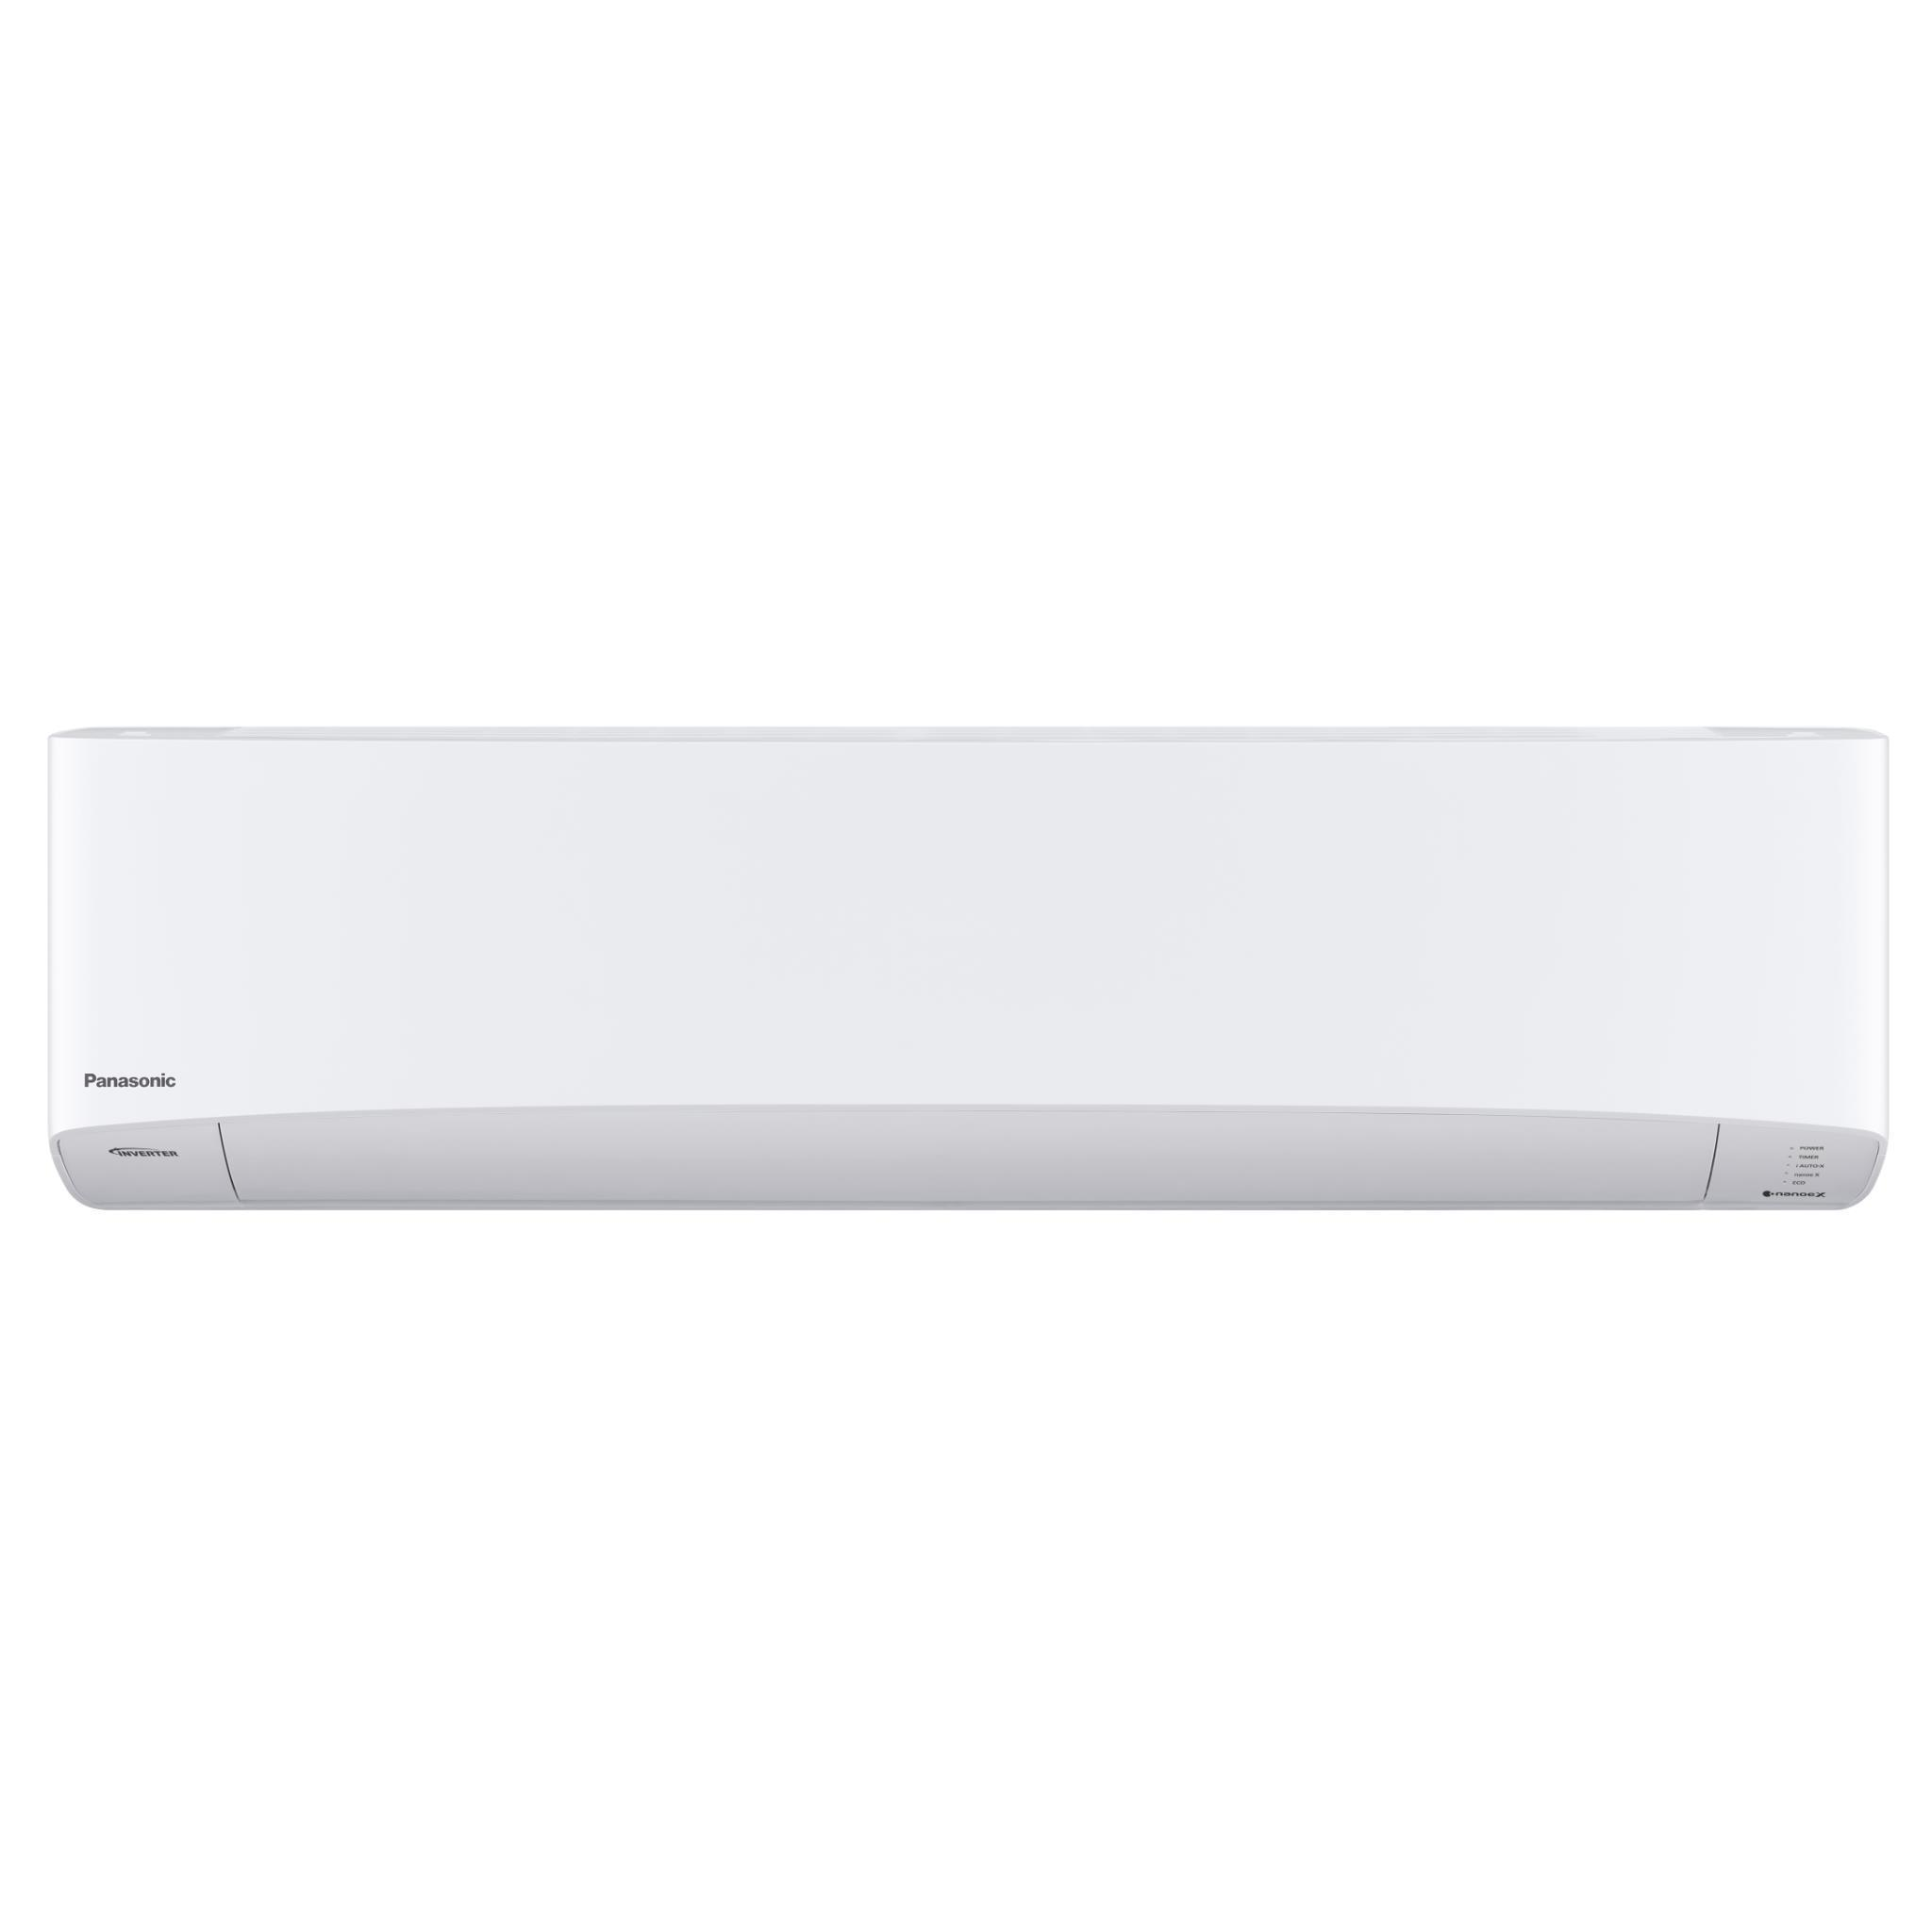 Panasonic C7.1kW H8.0kW Reverse Cycle Split System & Air Purifier